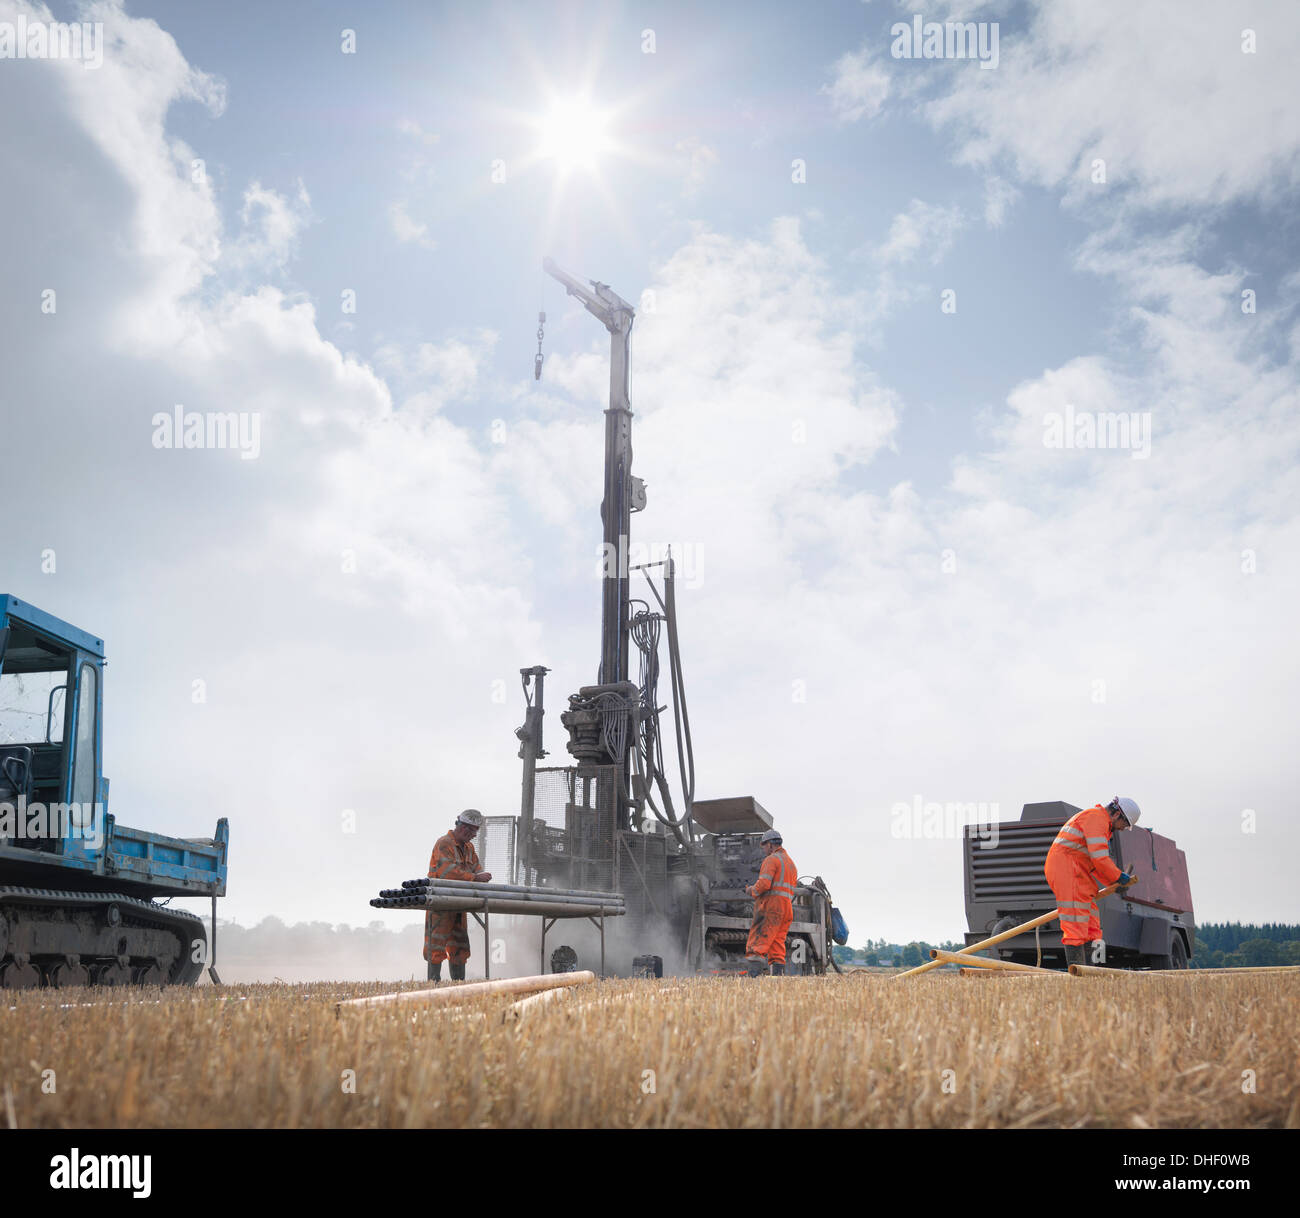 Workers and drilling rig exploring for coal in field - Stock Image